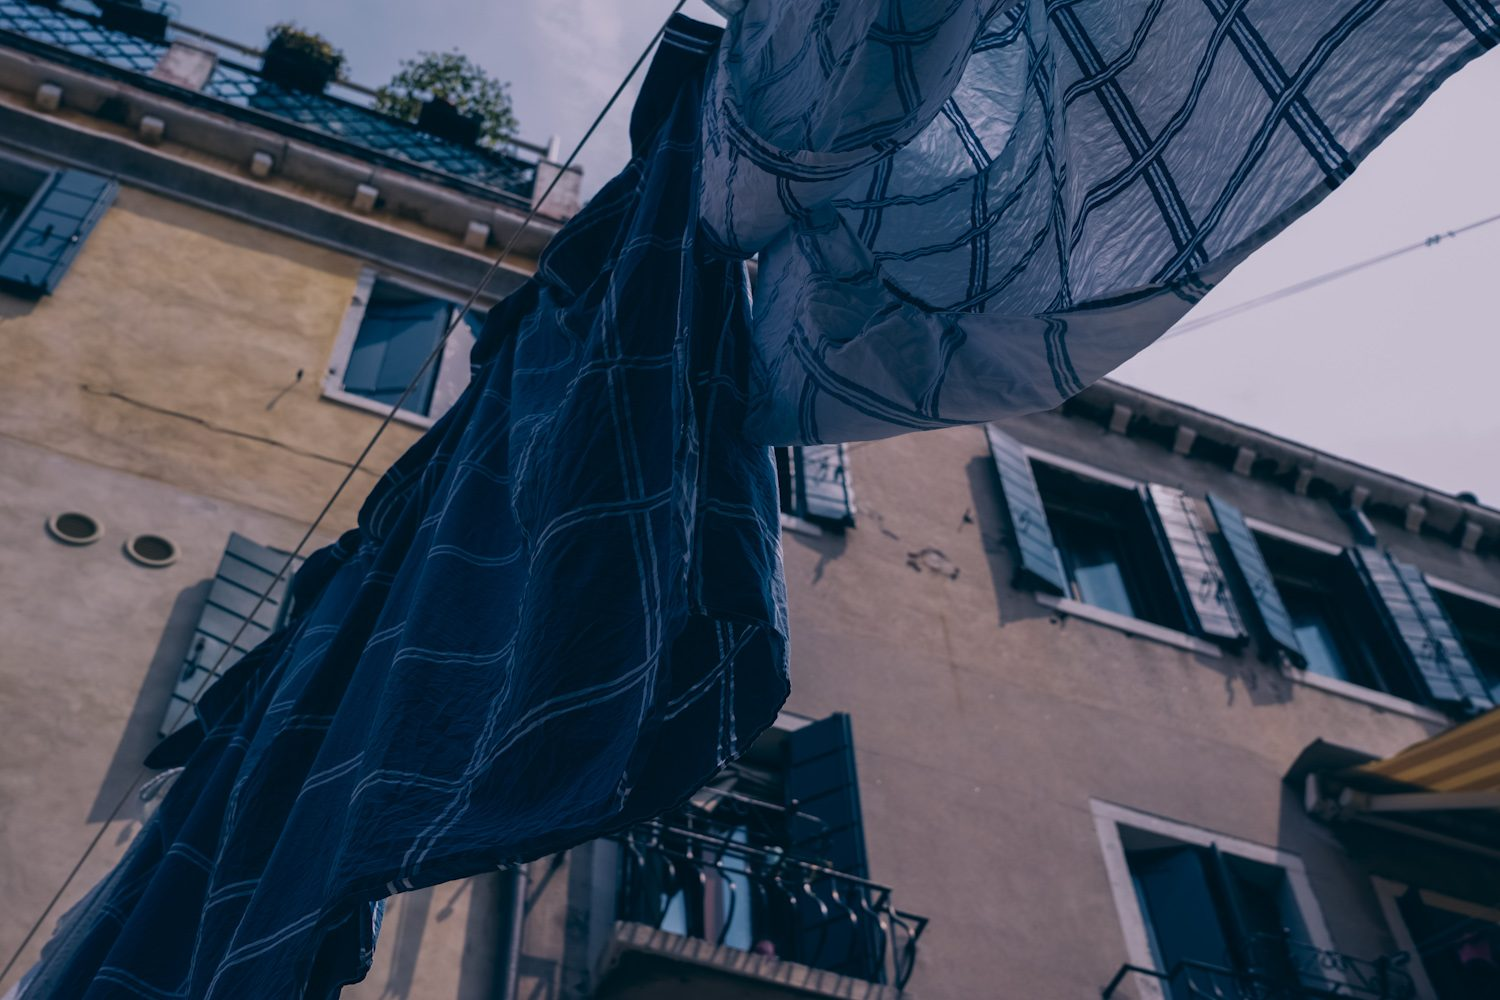 panorama_sheets_venice_italy_thevoyageur004